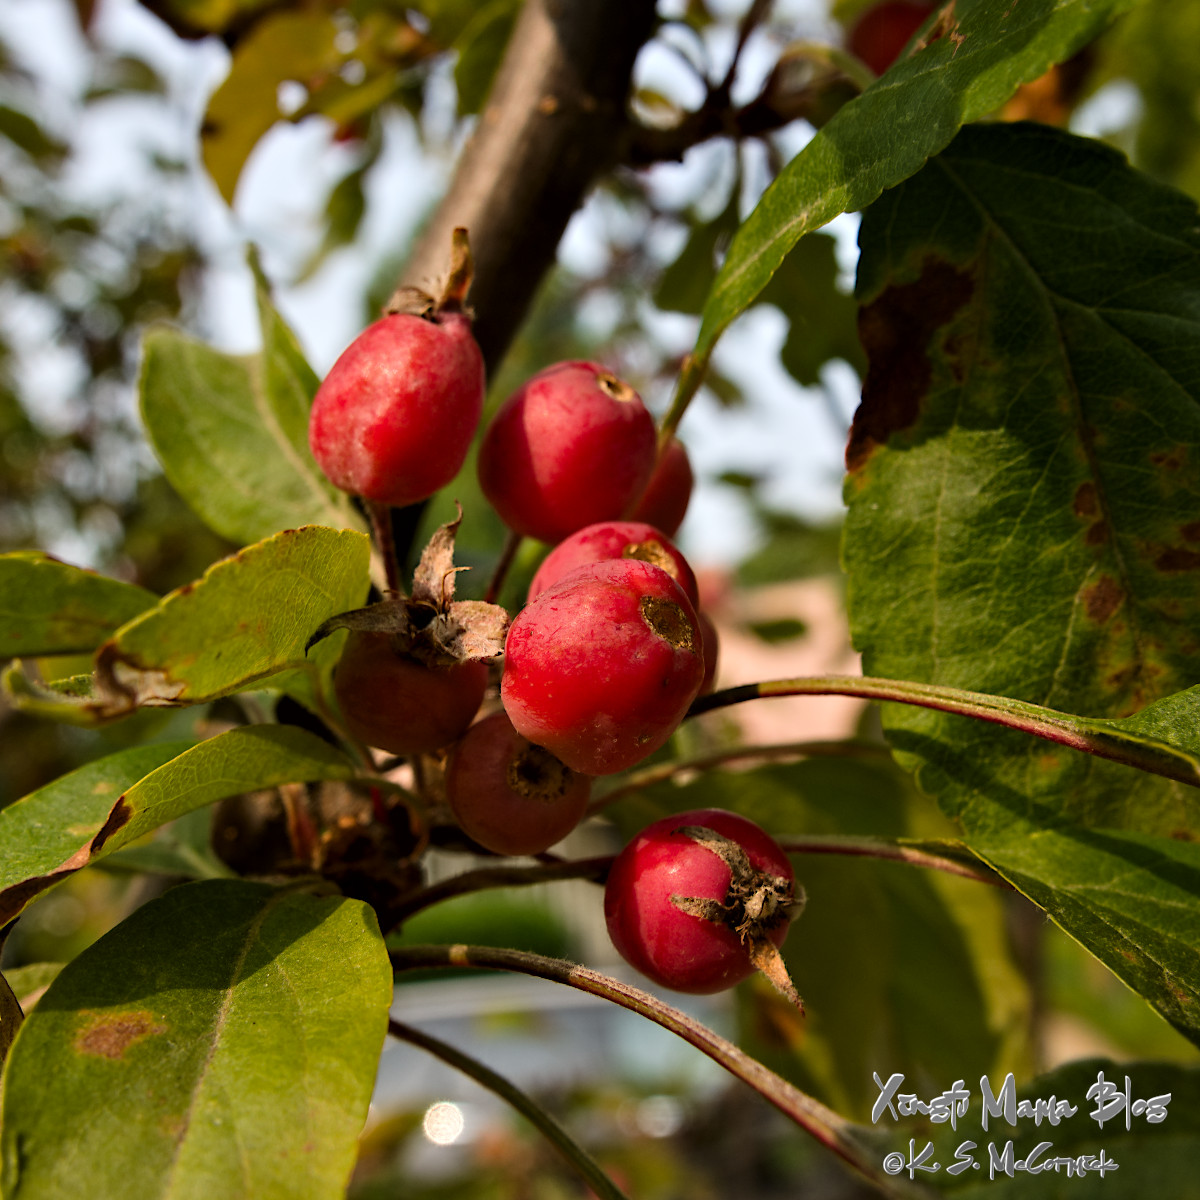 Small red fruits, they might be tiny crab apples or Shan zha (hawthorne).